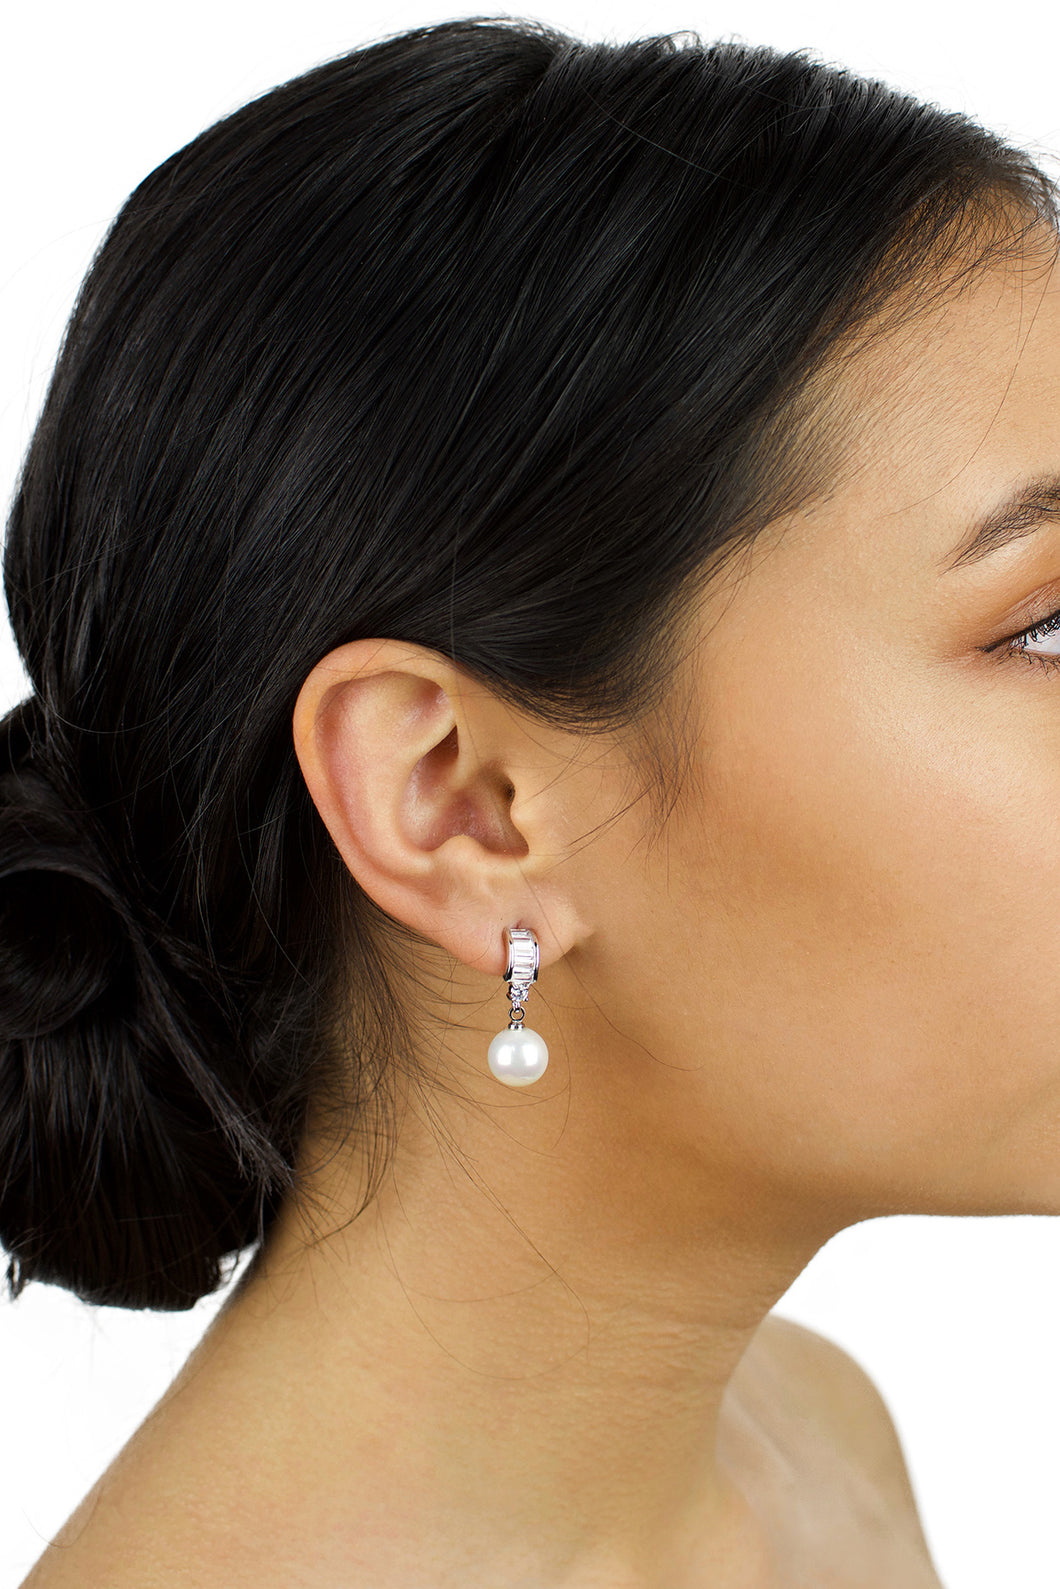 Small pearl earring with clear stones worn by a dark haired bridal model